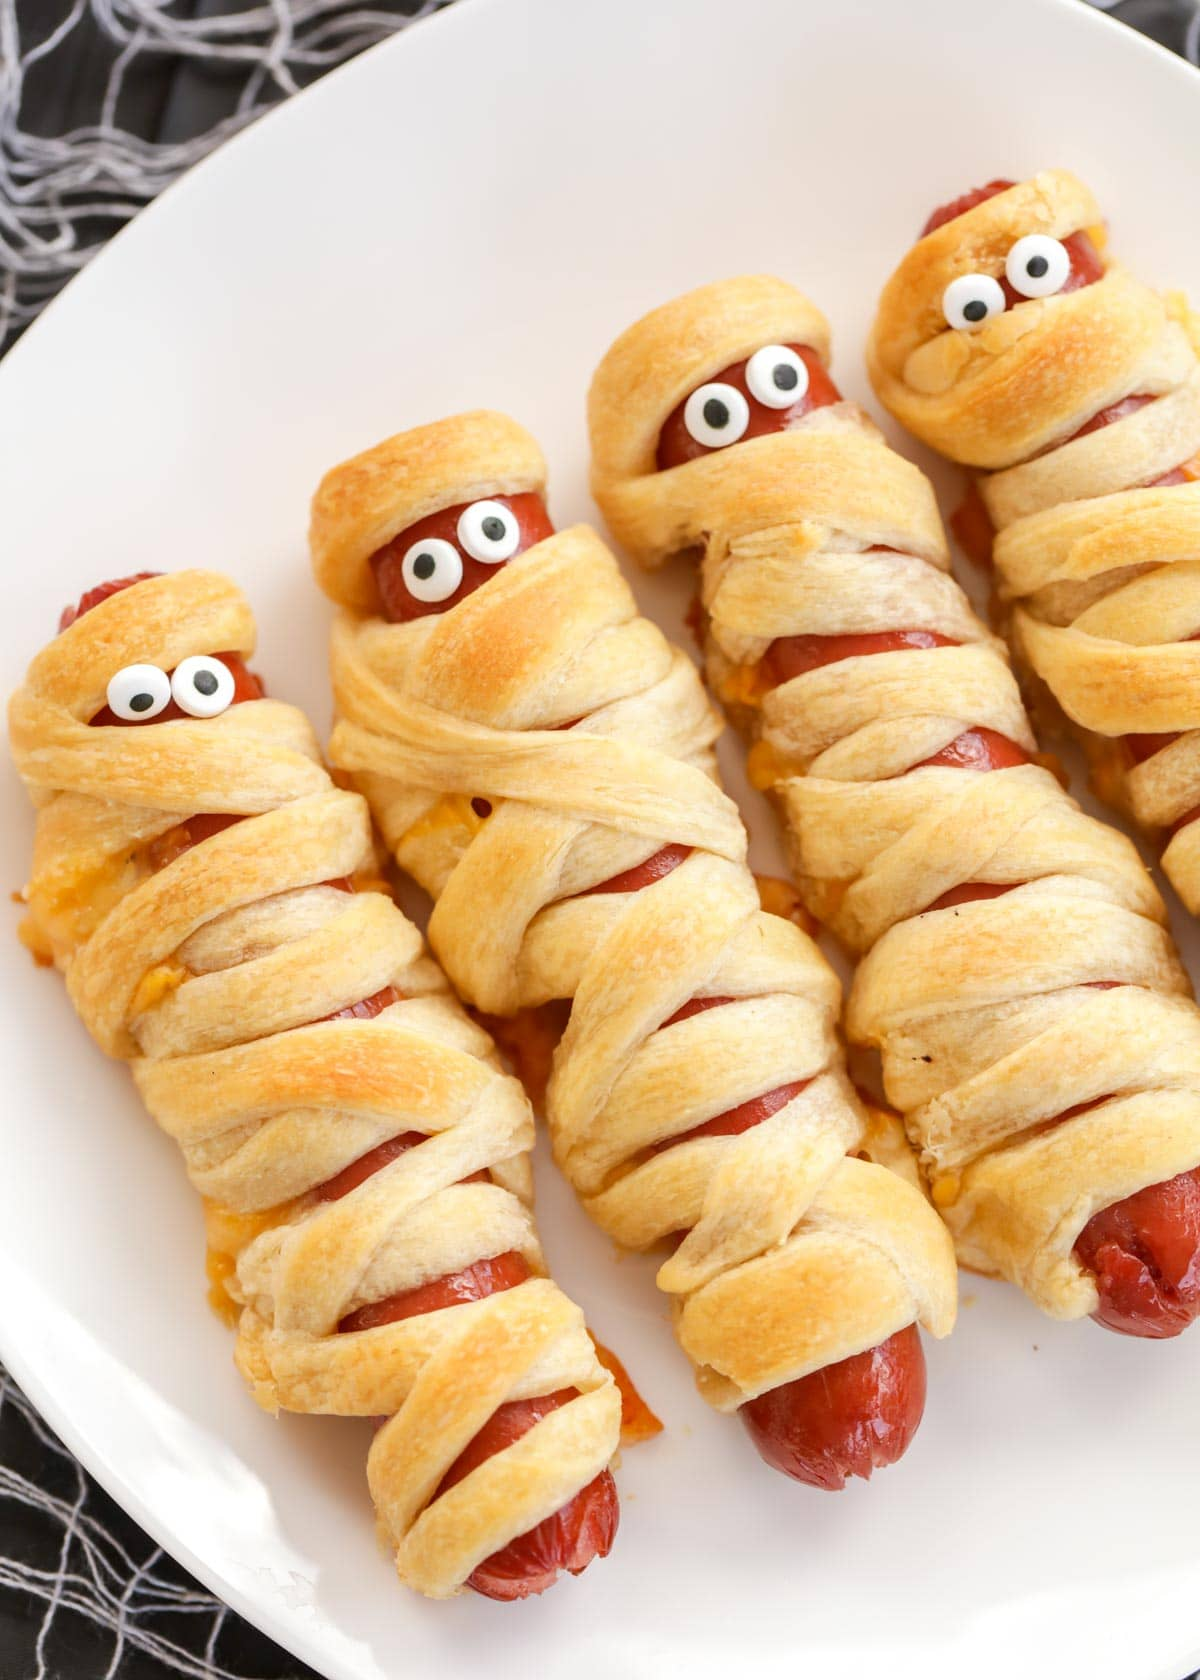 mummy dogs with candy eyes on a white plate